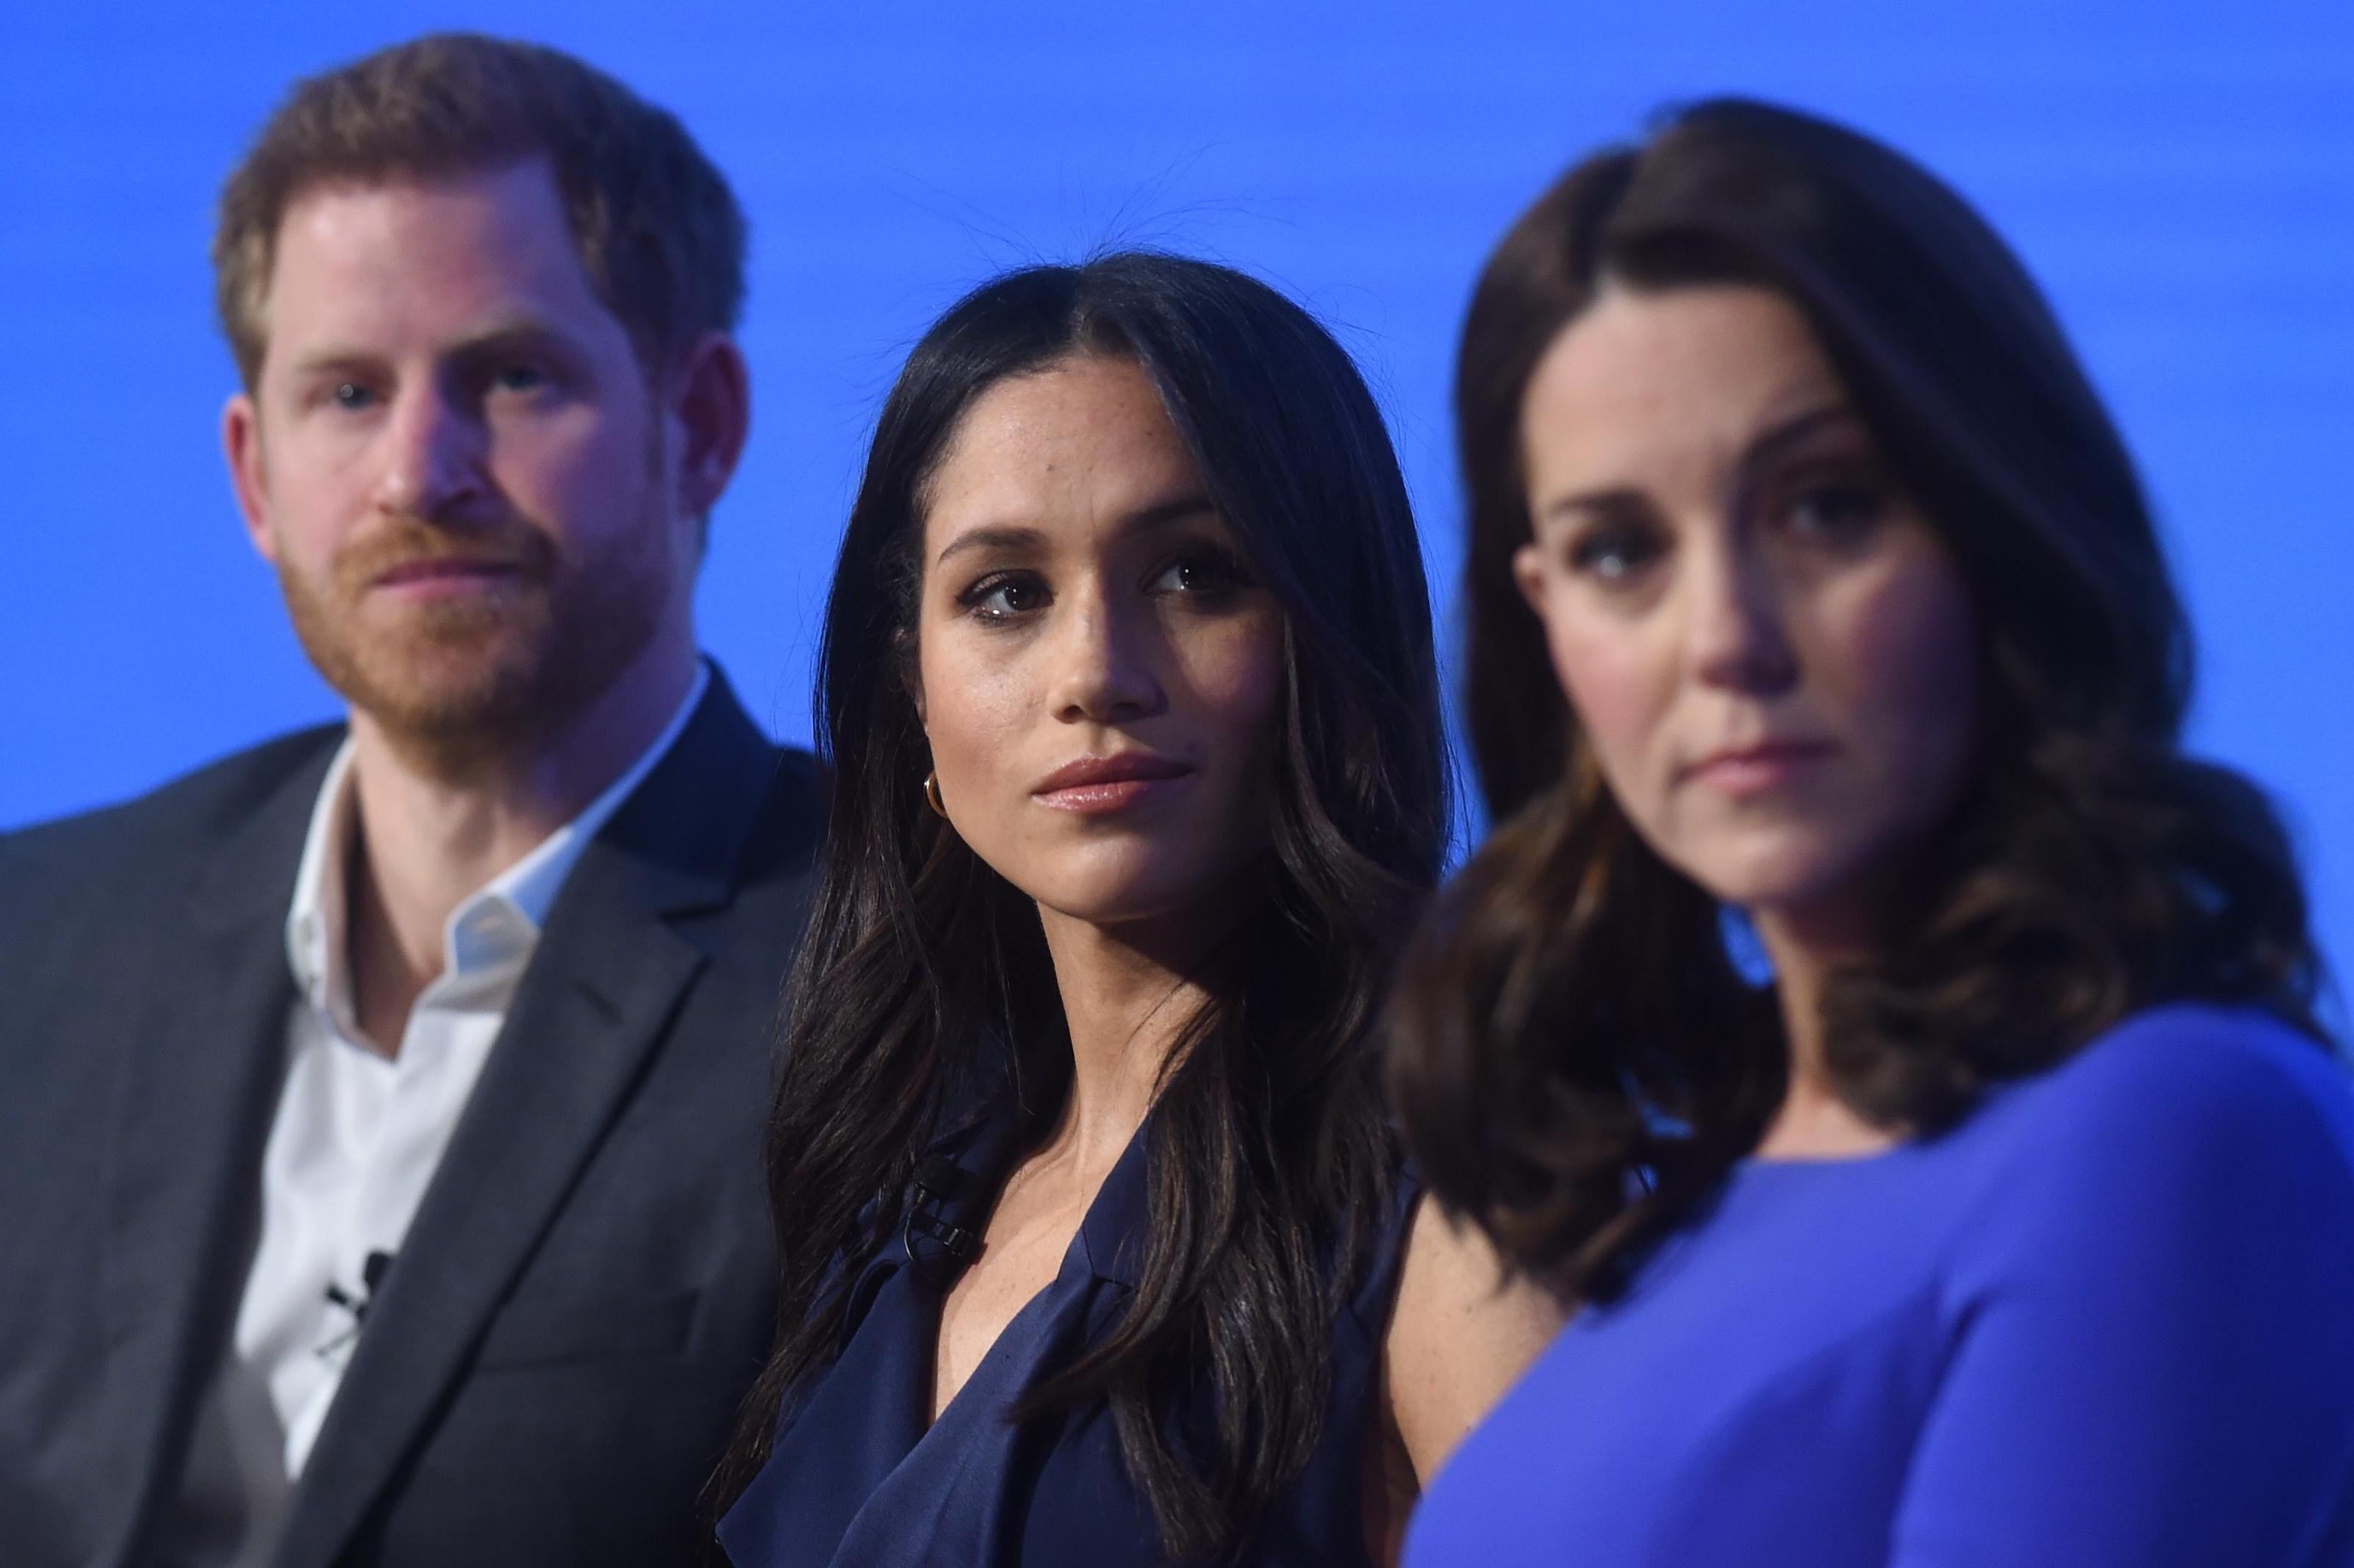 Meghan Markle and Kate Middleton's body language 'revealed rifts' when asked about rows in February… and Harry admitted they come 'thick and fast'